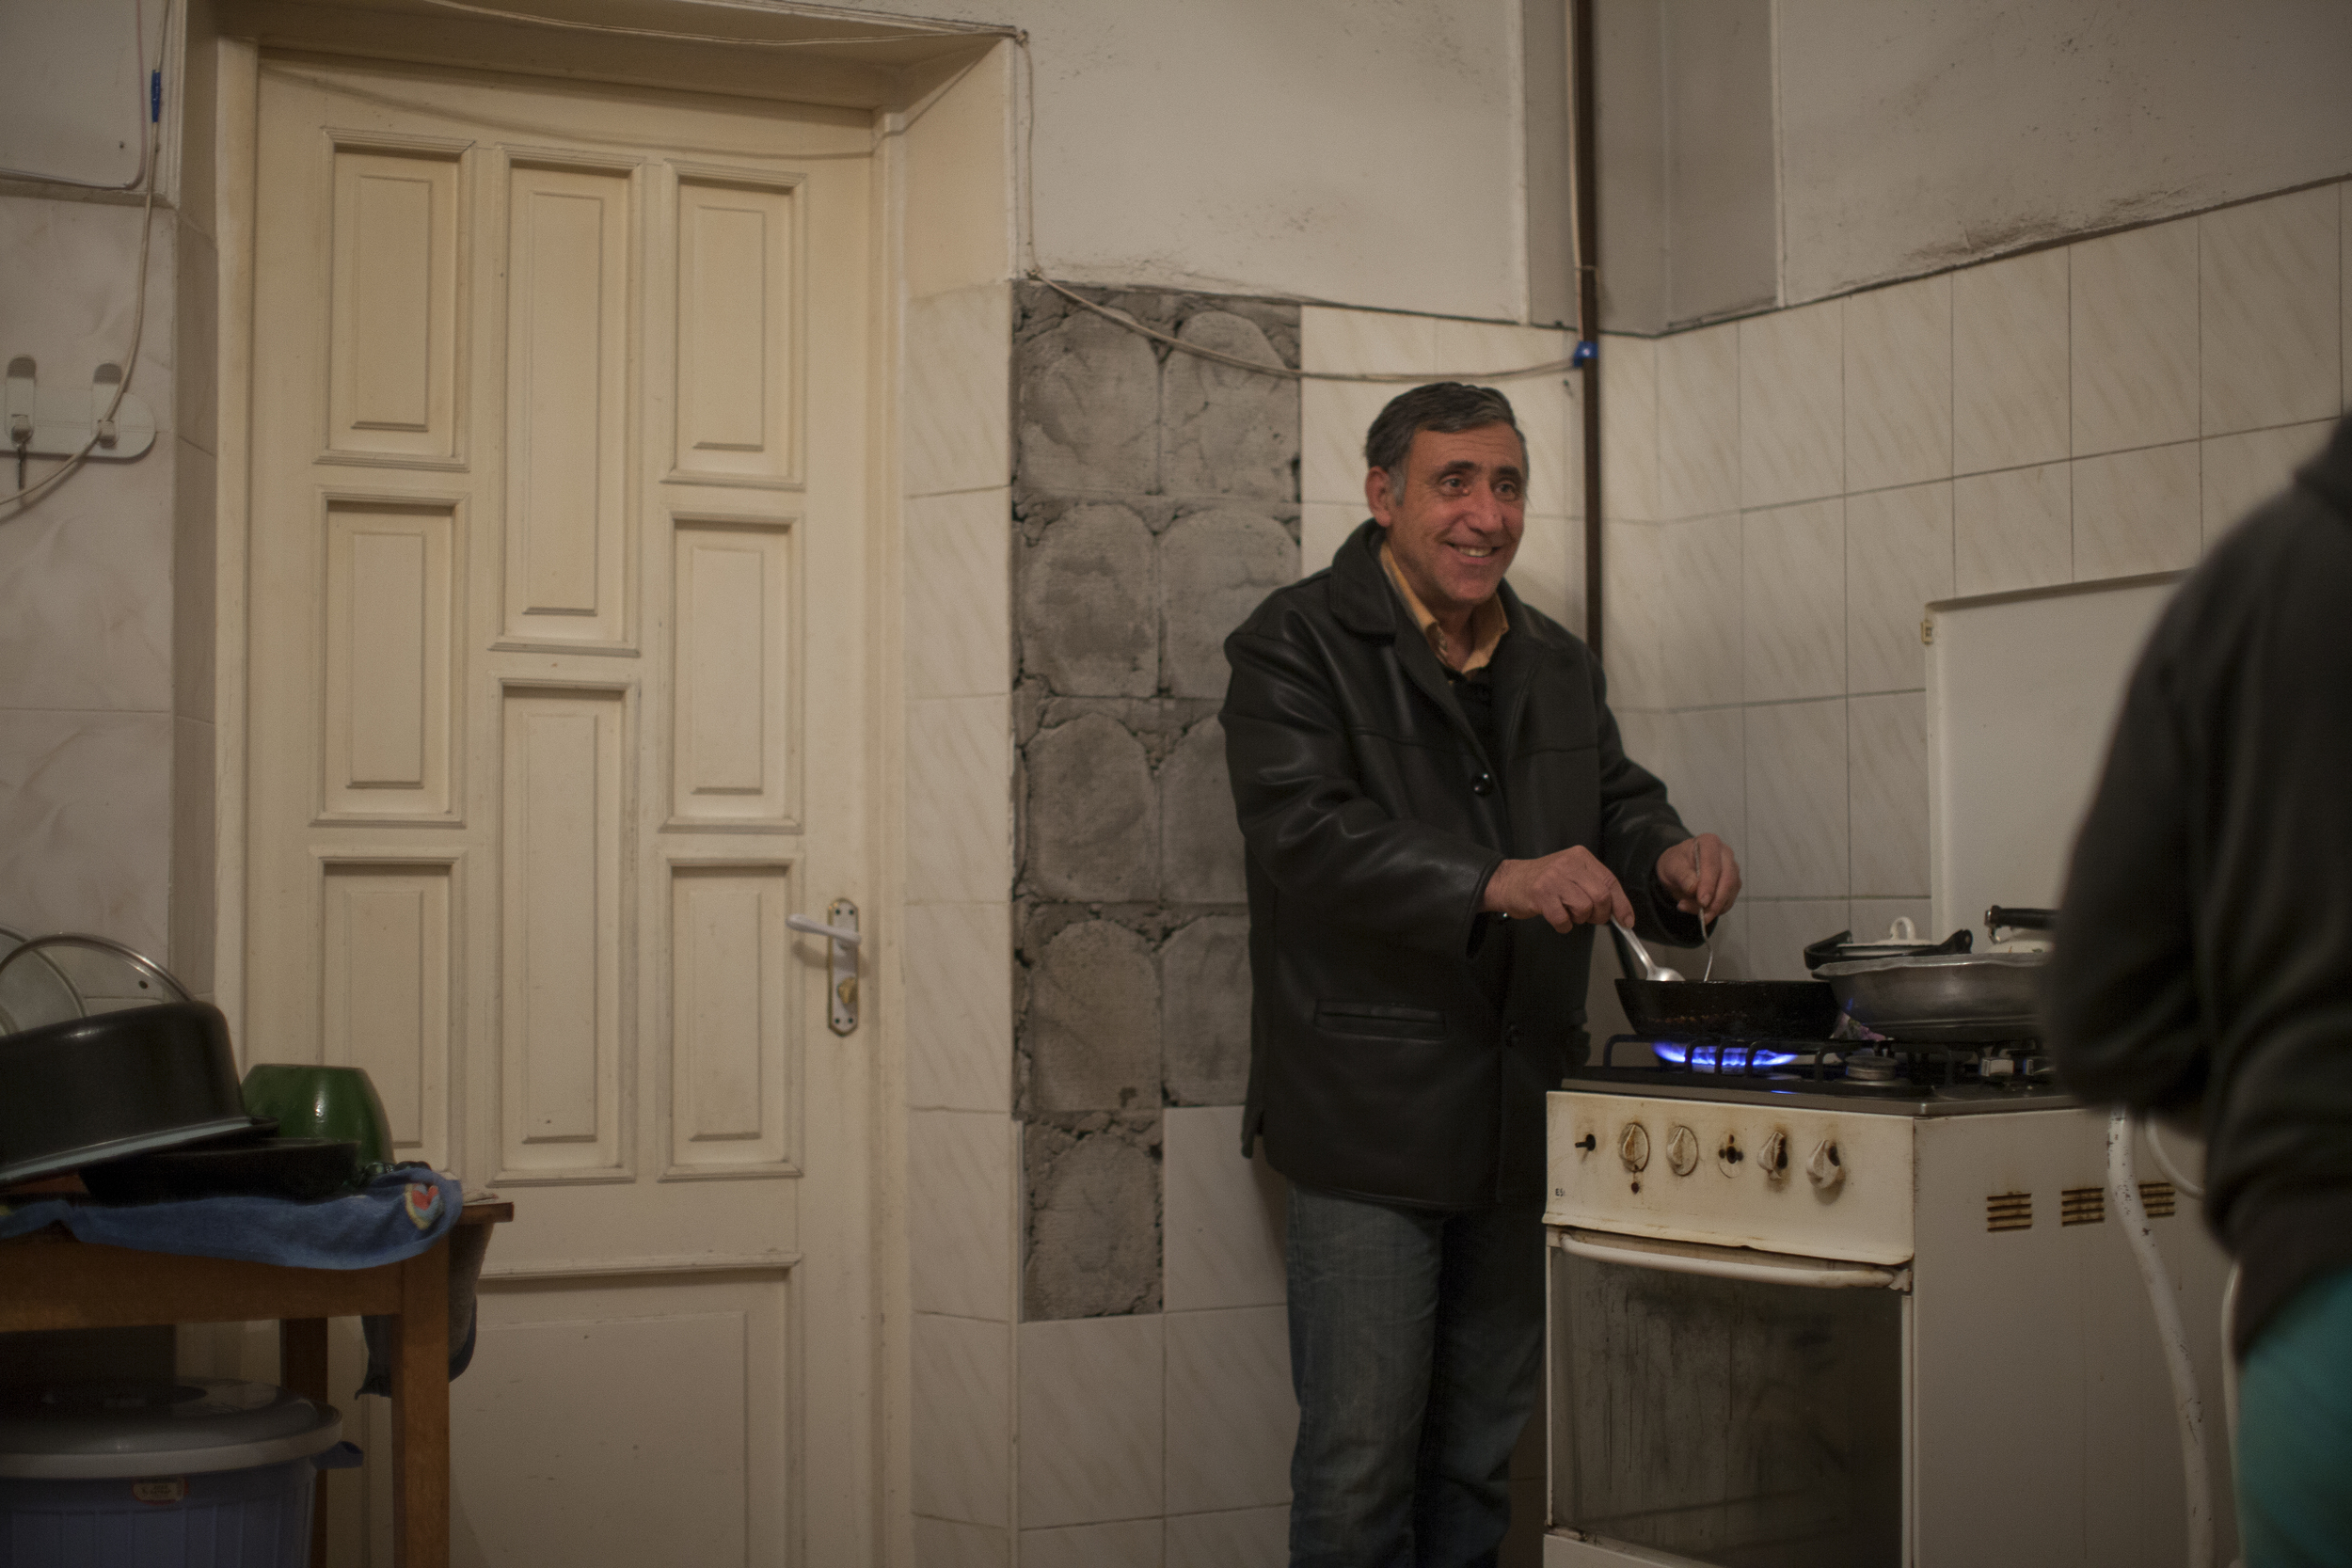 As of August2013 this region of Karabakh has housed 43 Syrian-Armenian families.